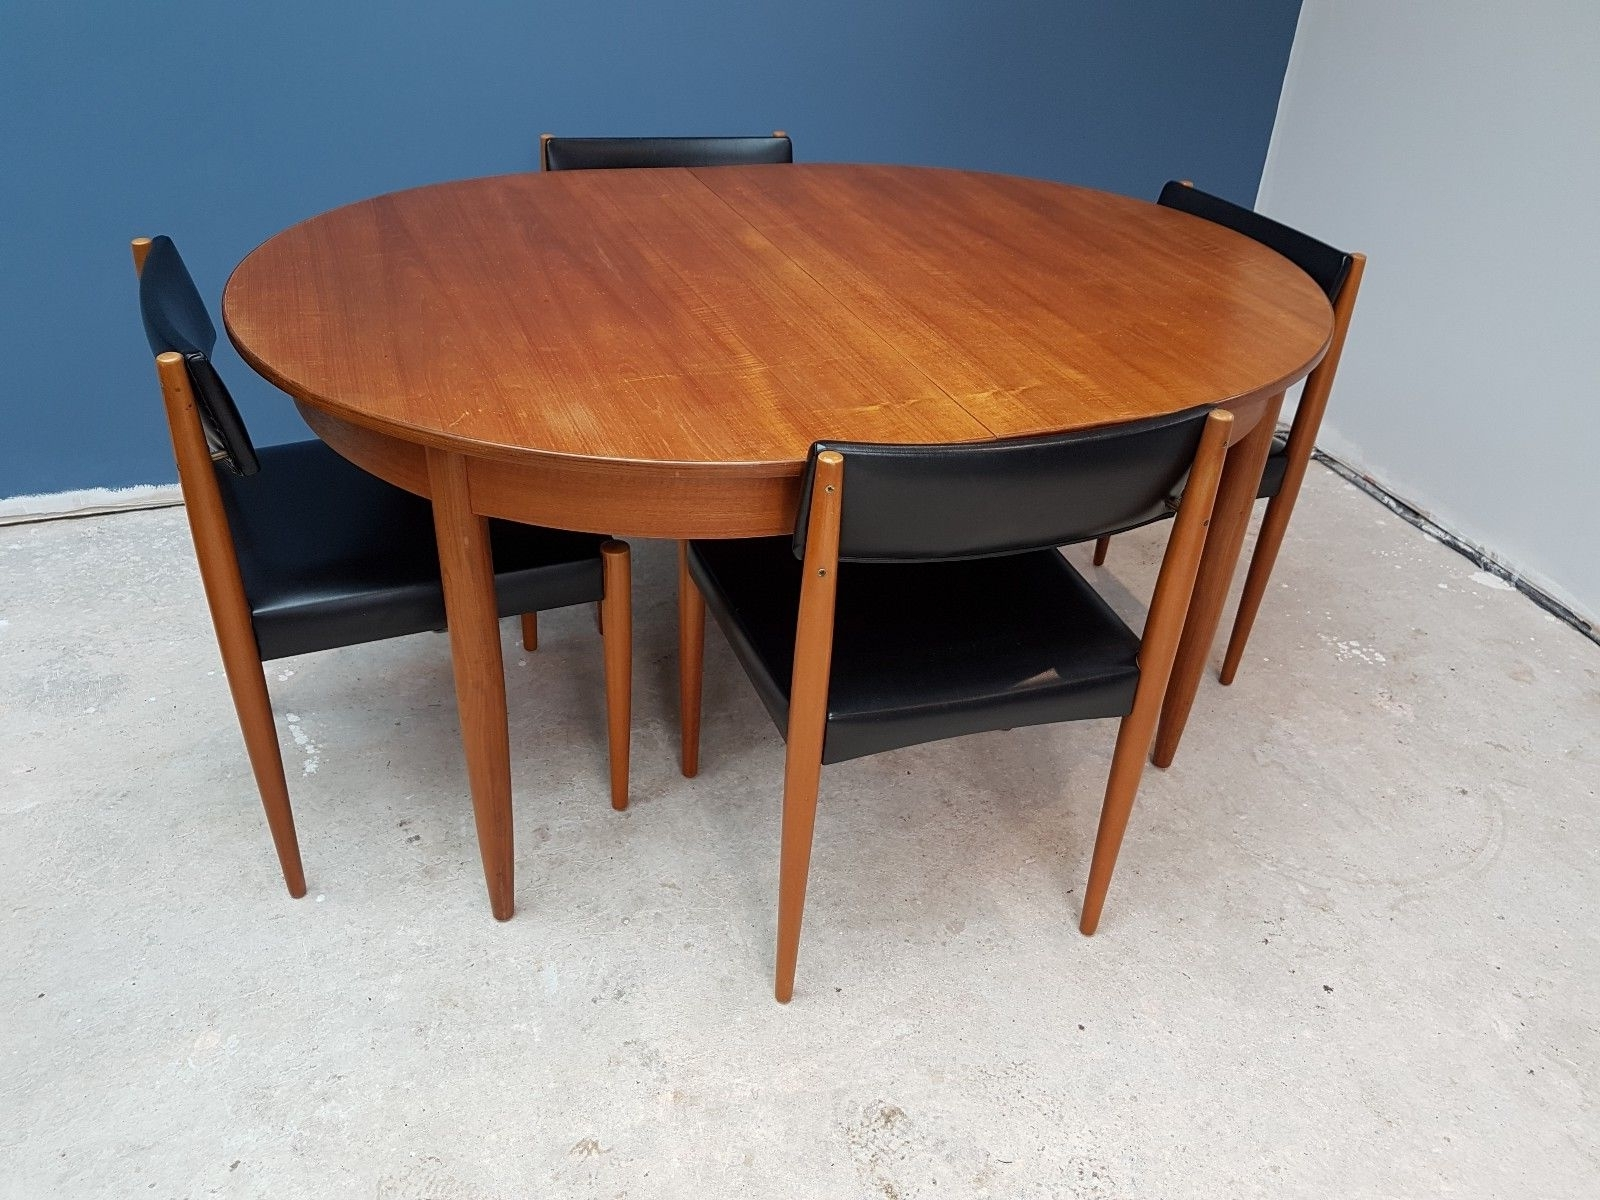 Vintage Retro G Plan Teak Extending Dining Table And 4 Danish Style inside Newest Retro Extending Dining Tables